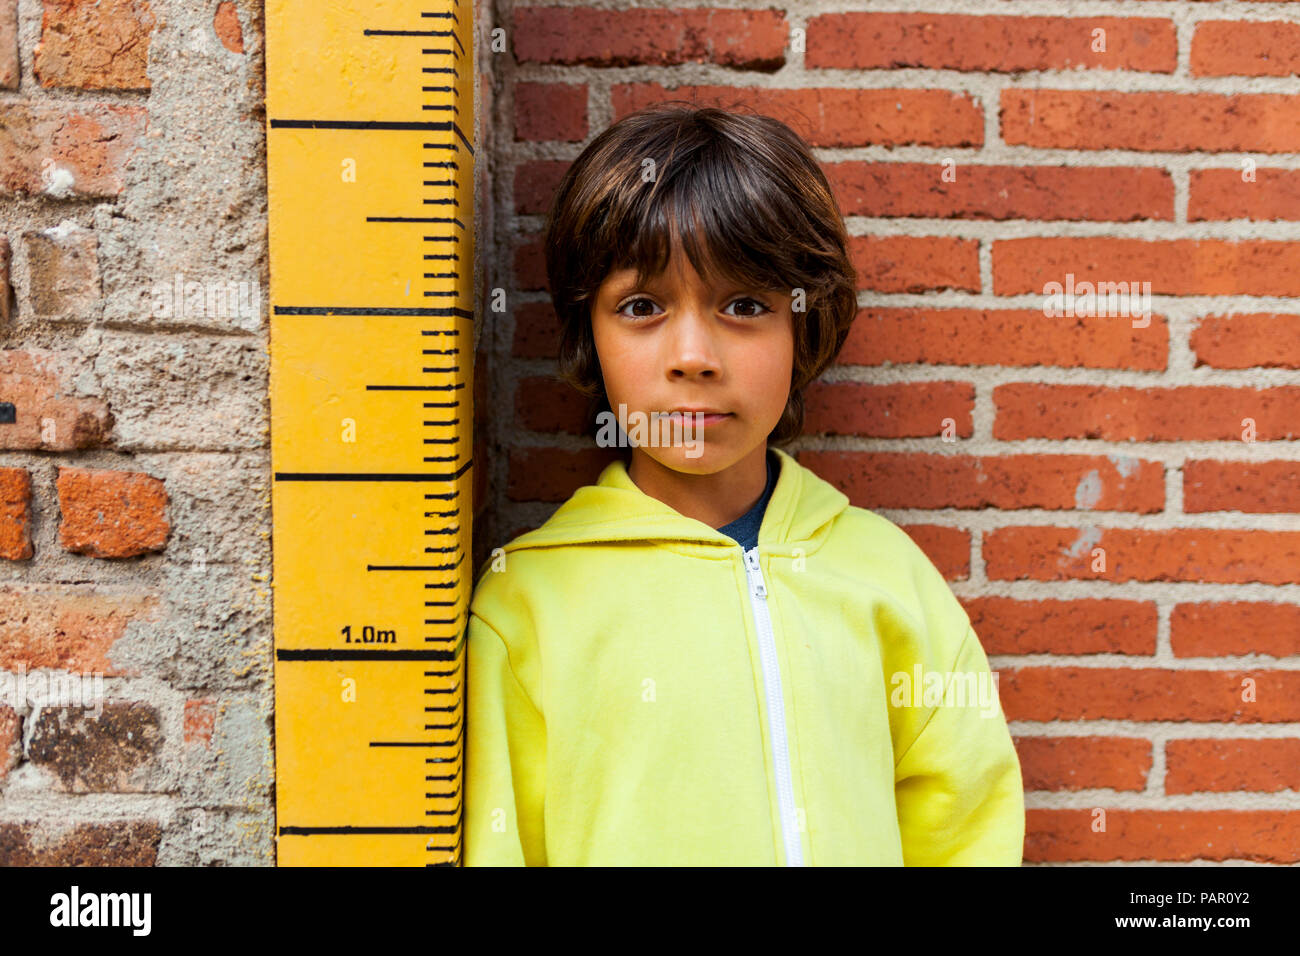 Portrait of sceptical boy leaning against yardstick - Stock Image